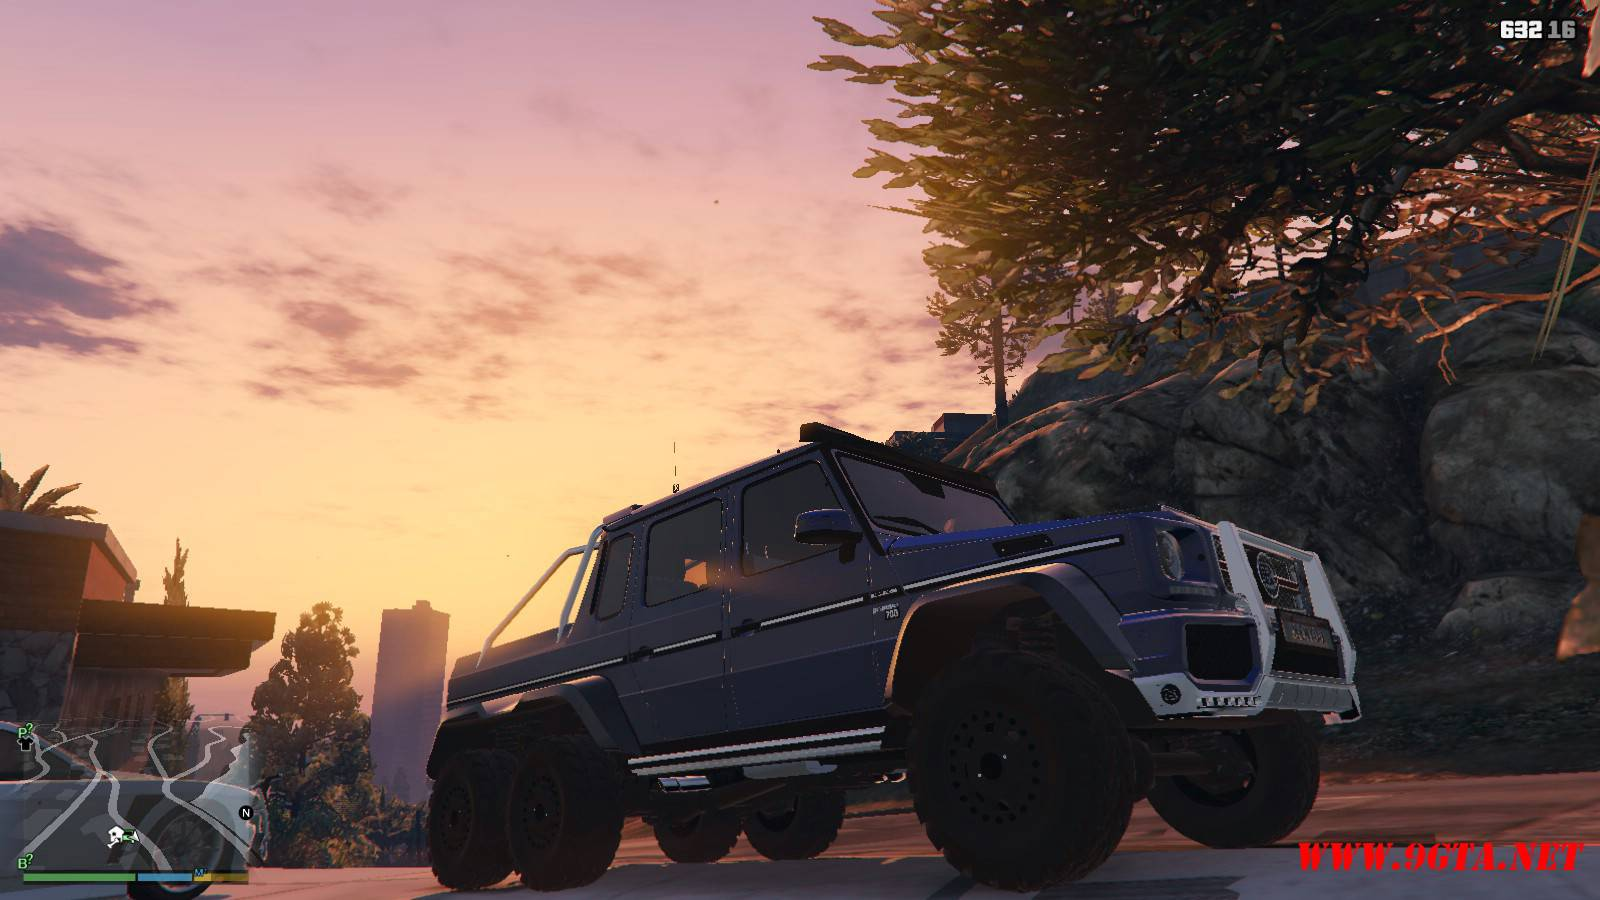 Barbus 700 G63 AMG GTA5 Mods (16)